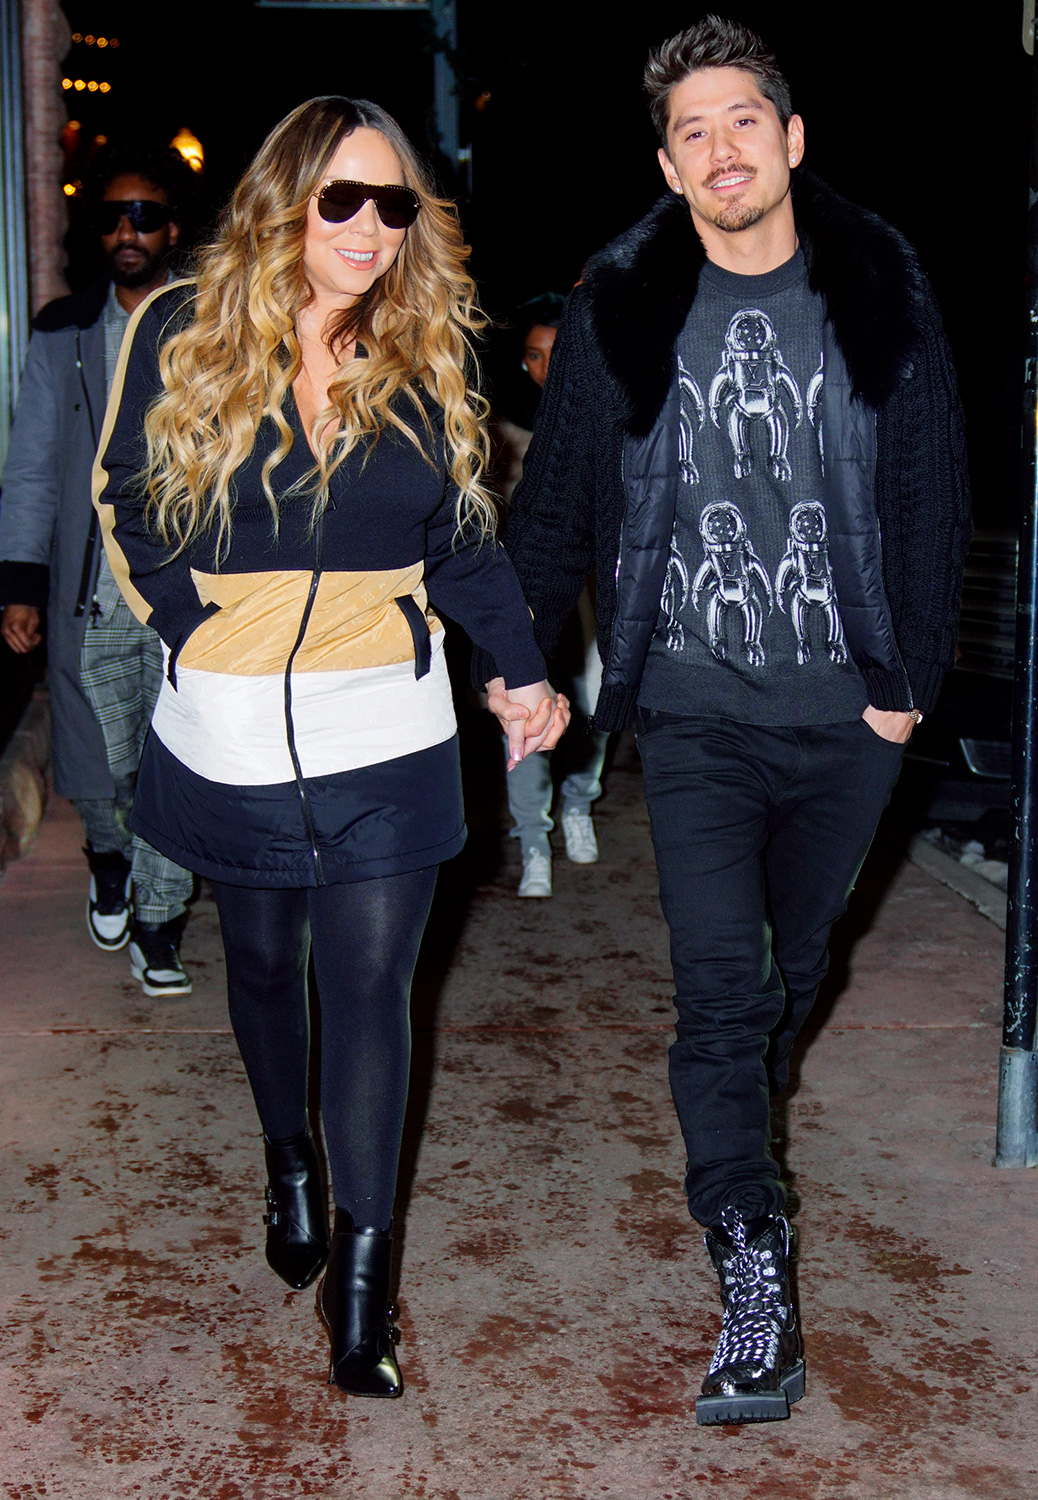 Mariah Carey and Brian Tanaka are all smiles when navigating the slippery streets of Aspen, CO while going from store to store